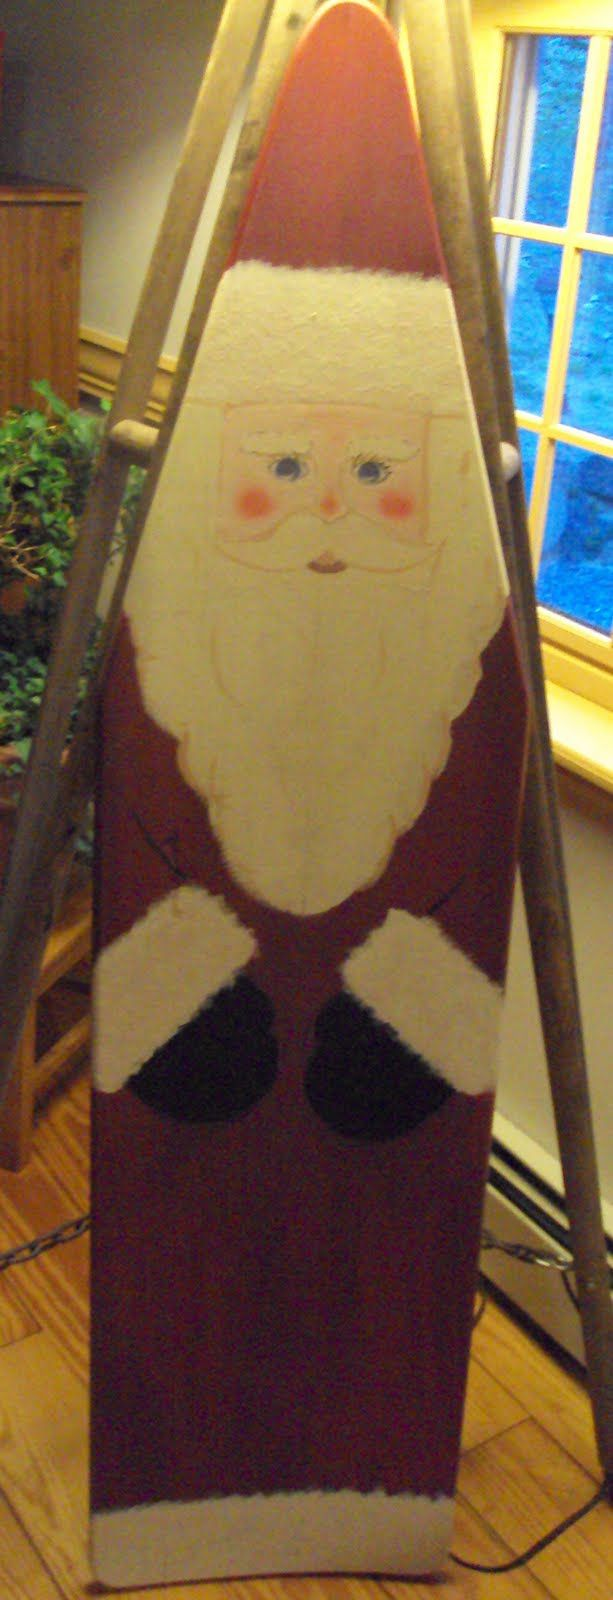 painted wood ironing board | This wooden ironing board I paid 20.00 to have this Santa put on it ...